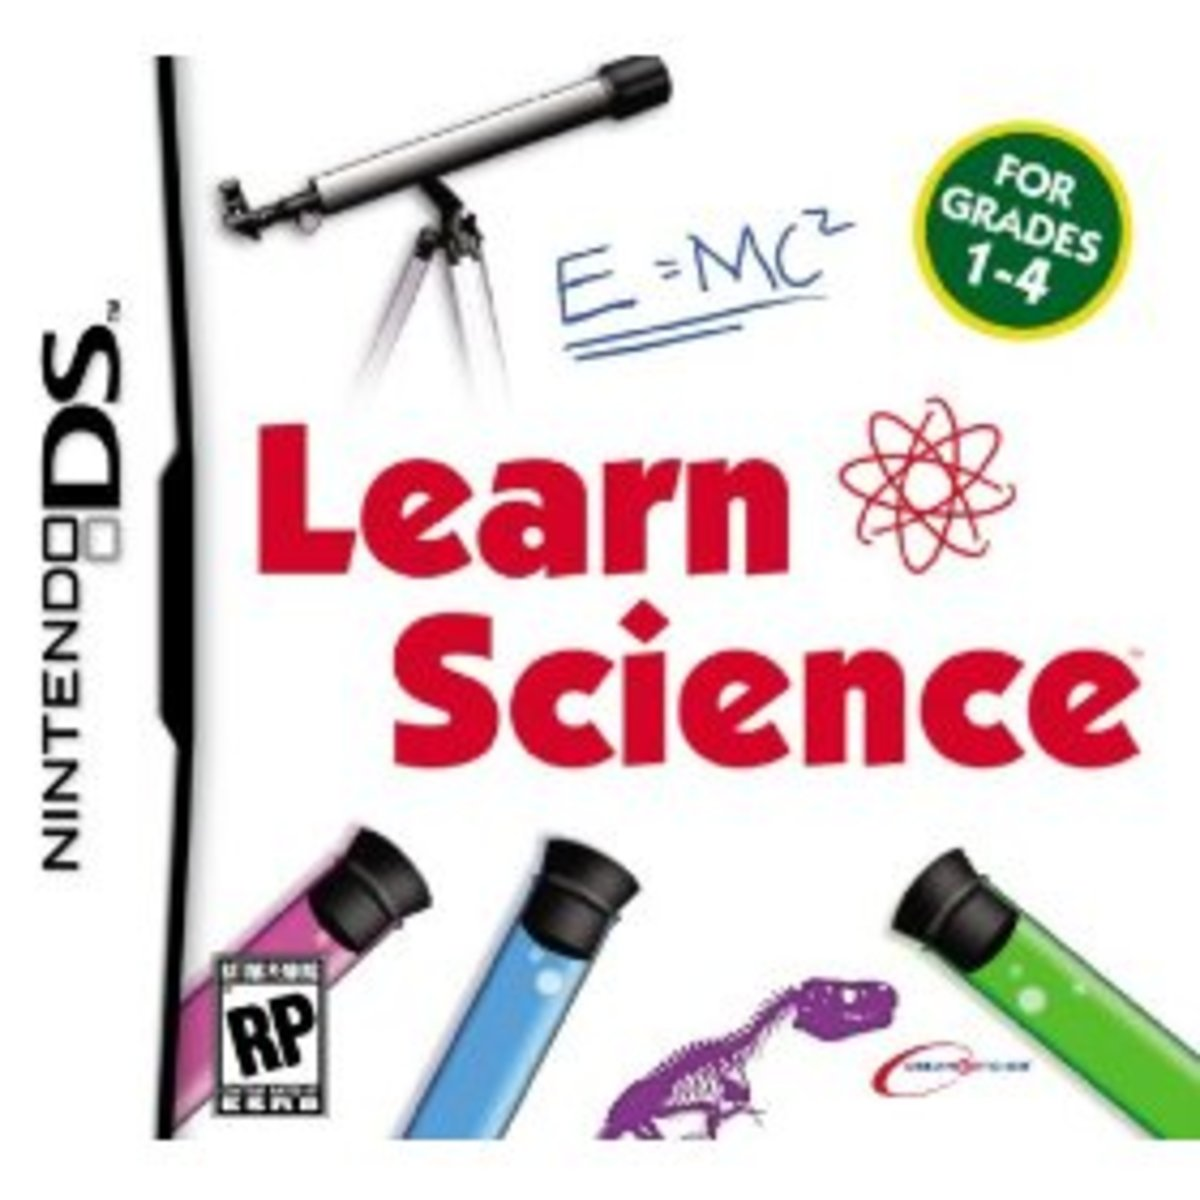 Learn on the Nintendo DSi